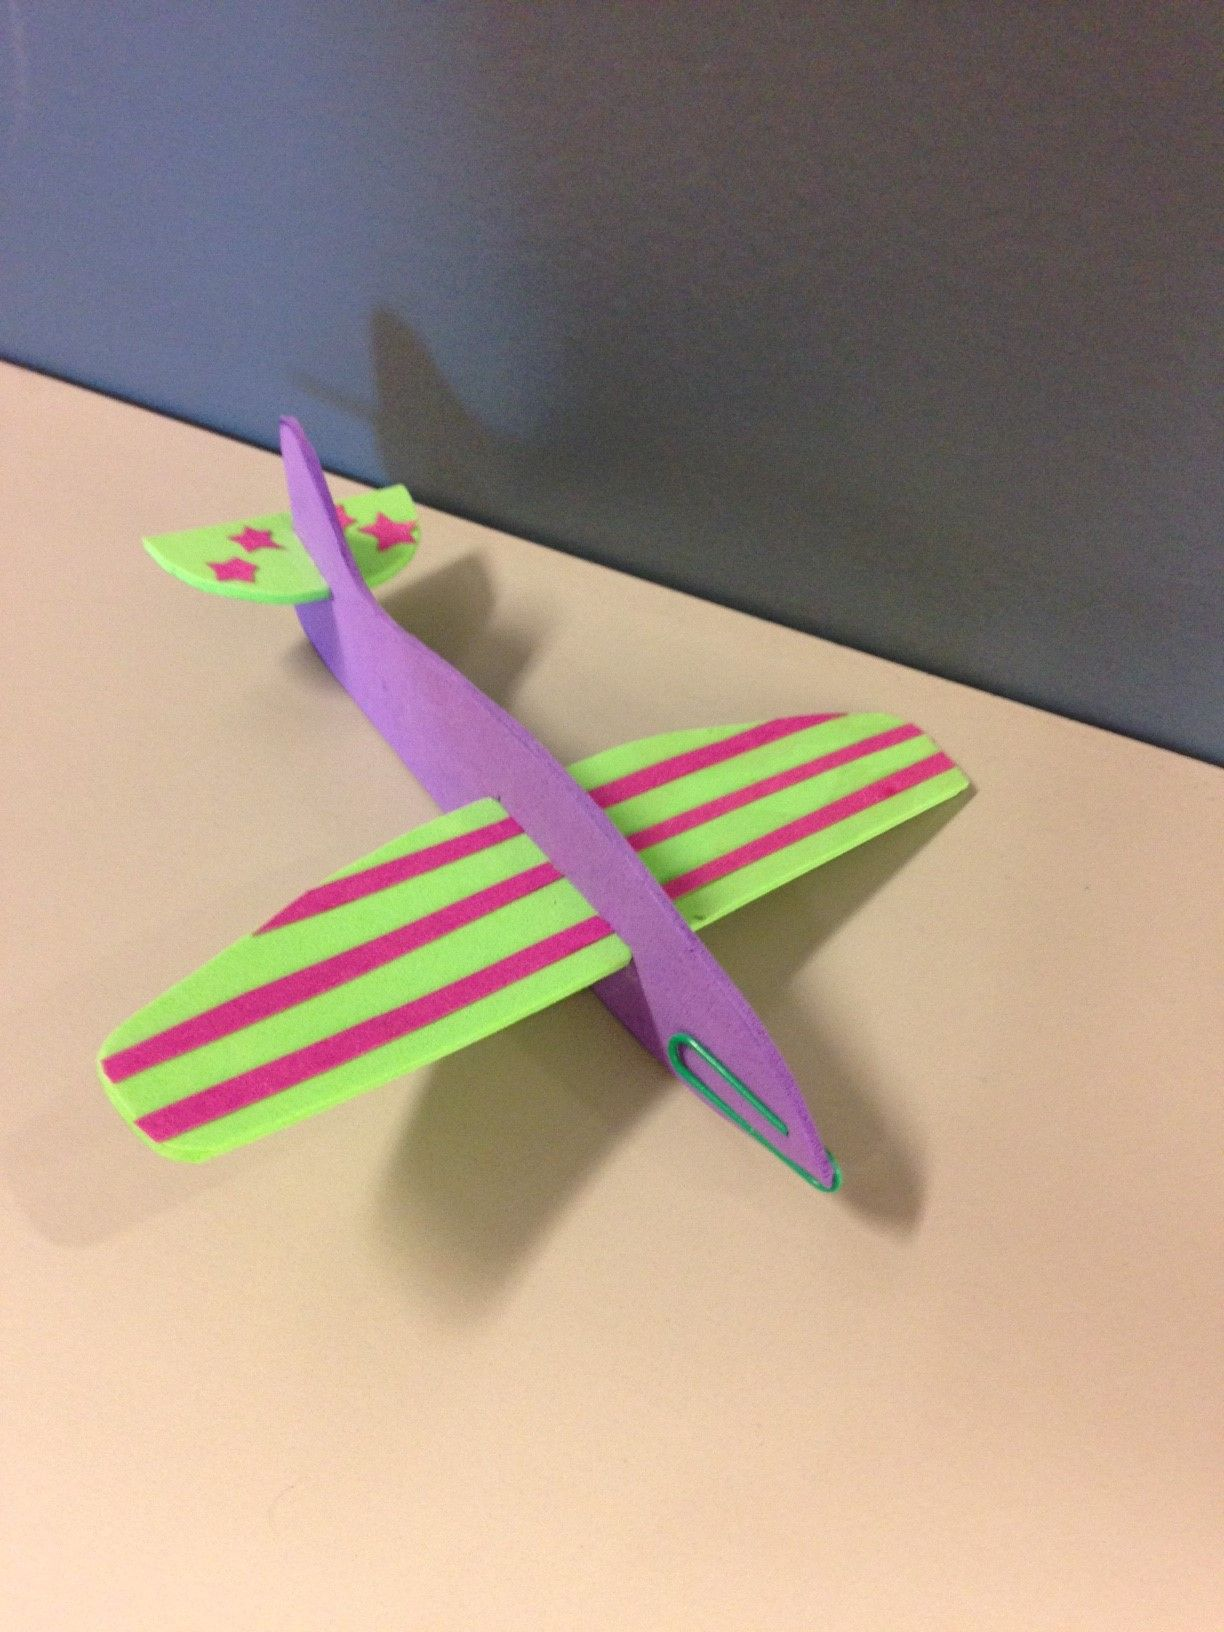 Craft Time North Carolina Build Your Own Airplane Like The